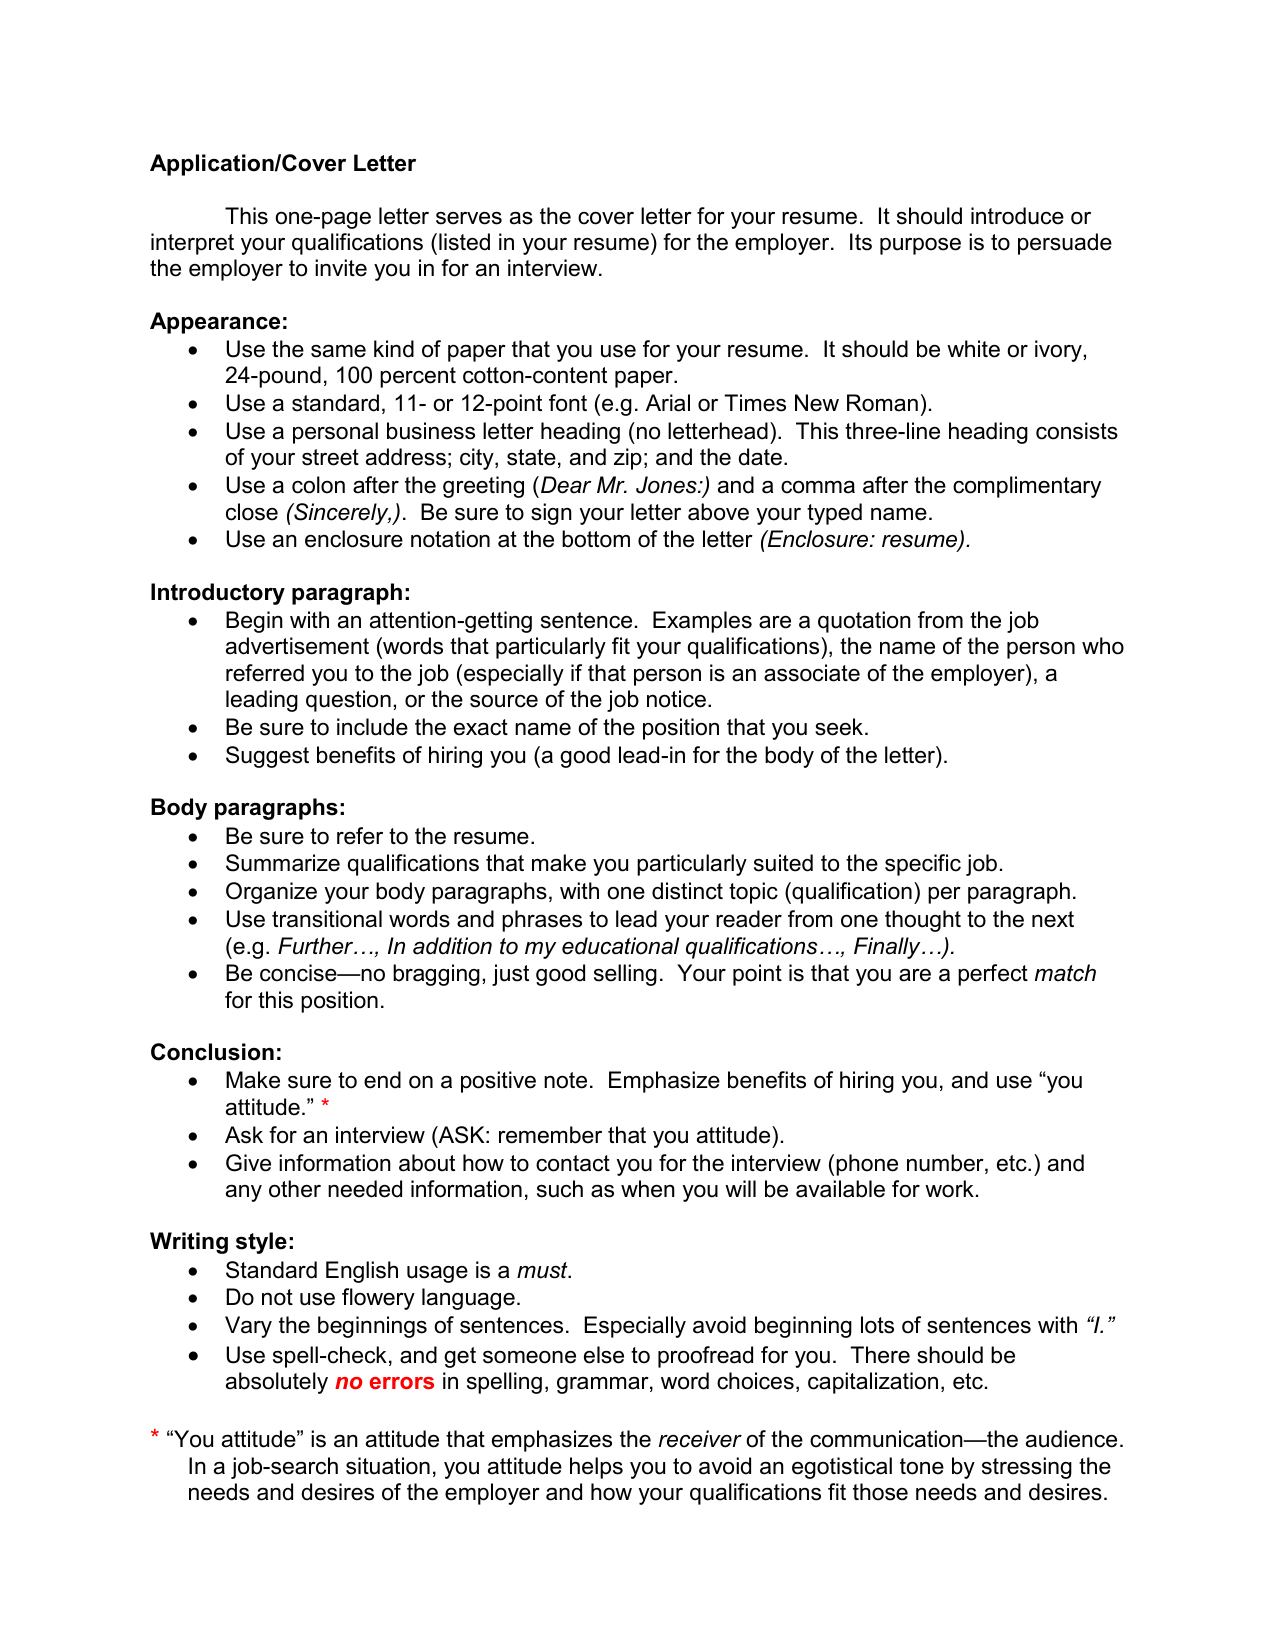 Application Cover Letter